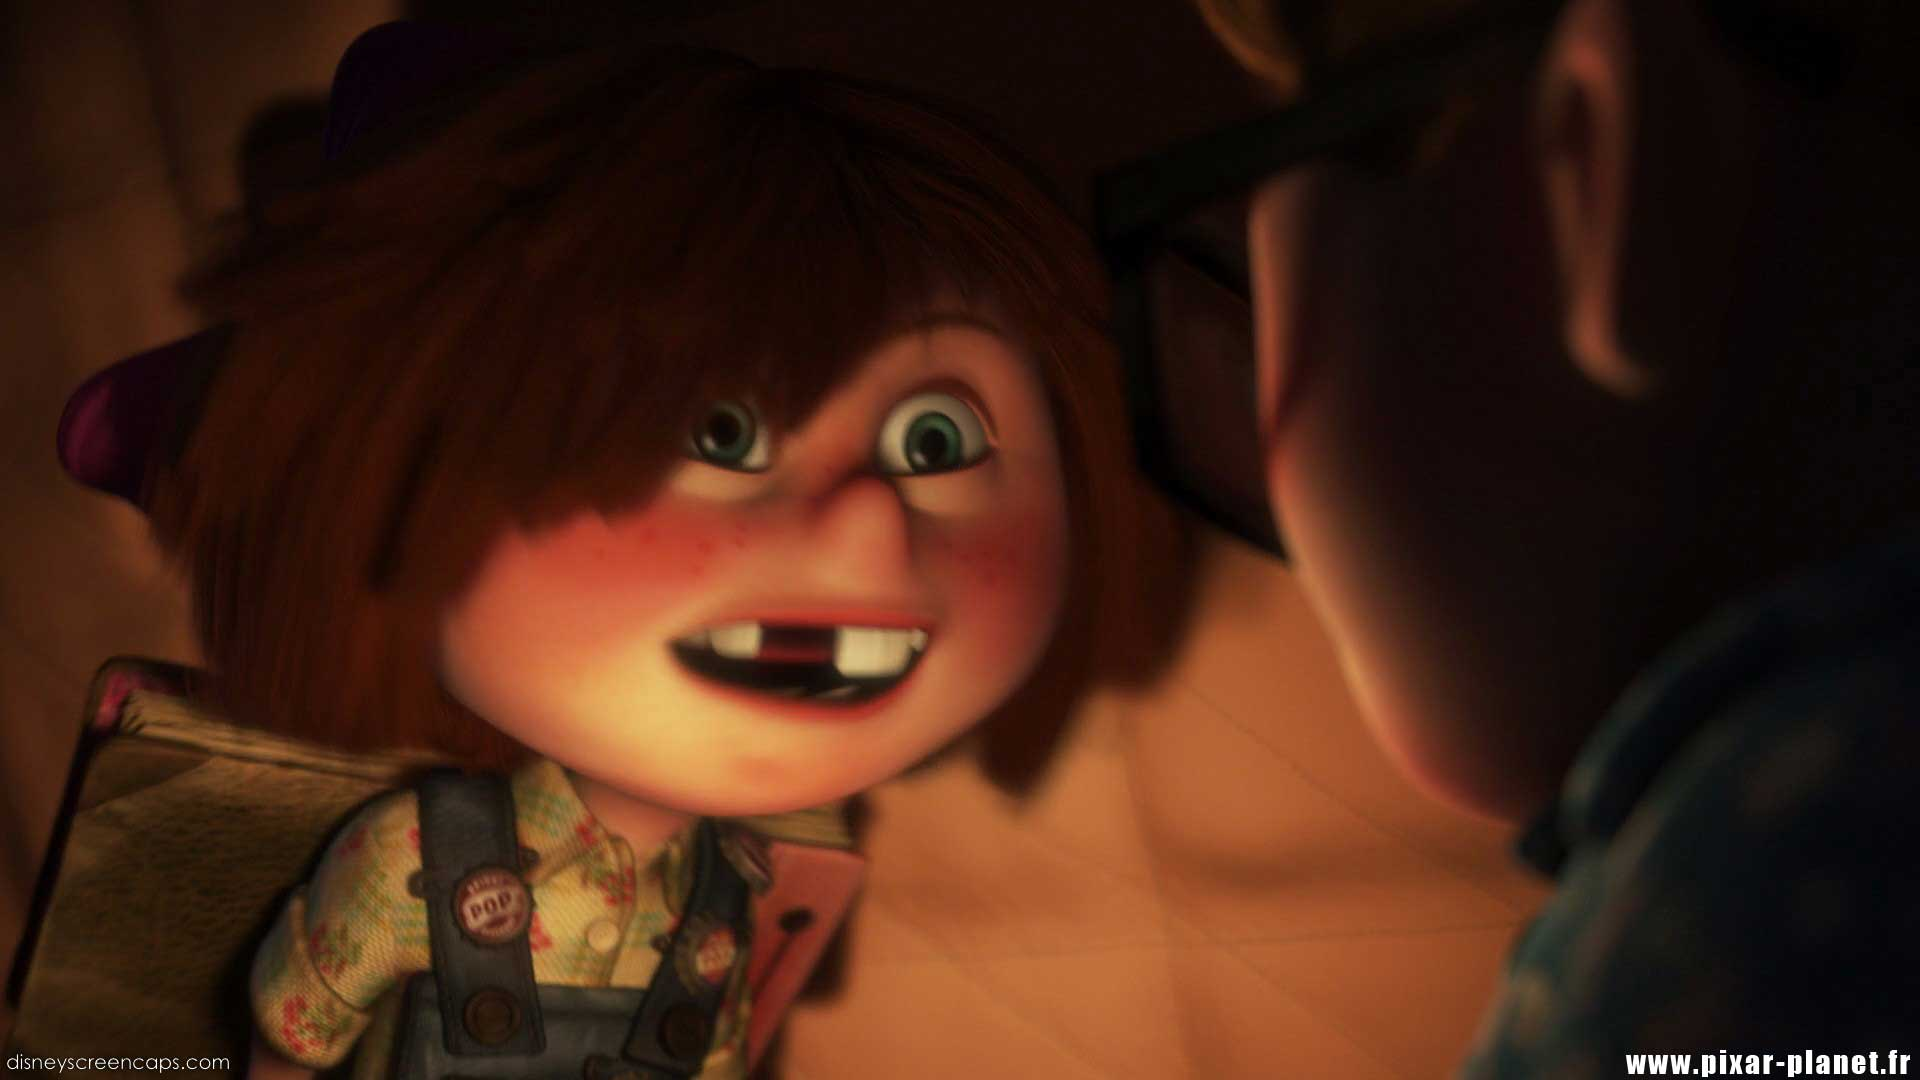 Quotes From Up Pixar Planetfr